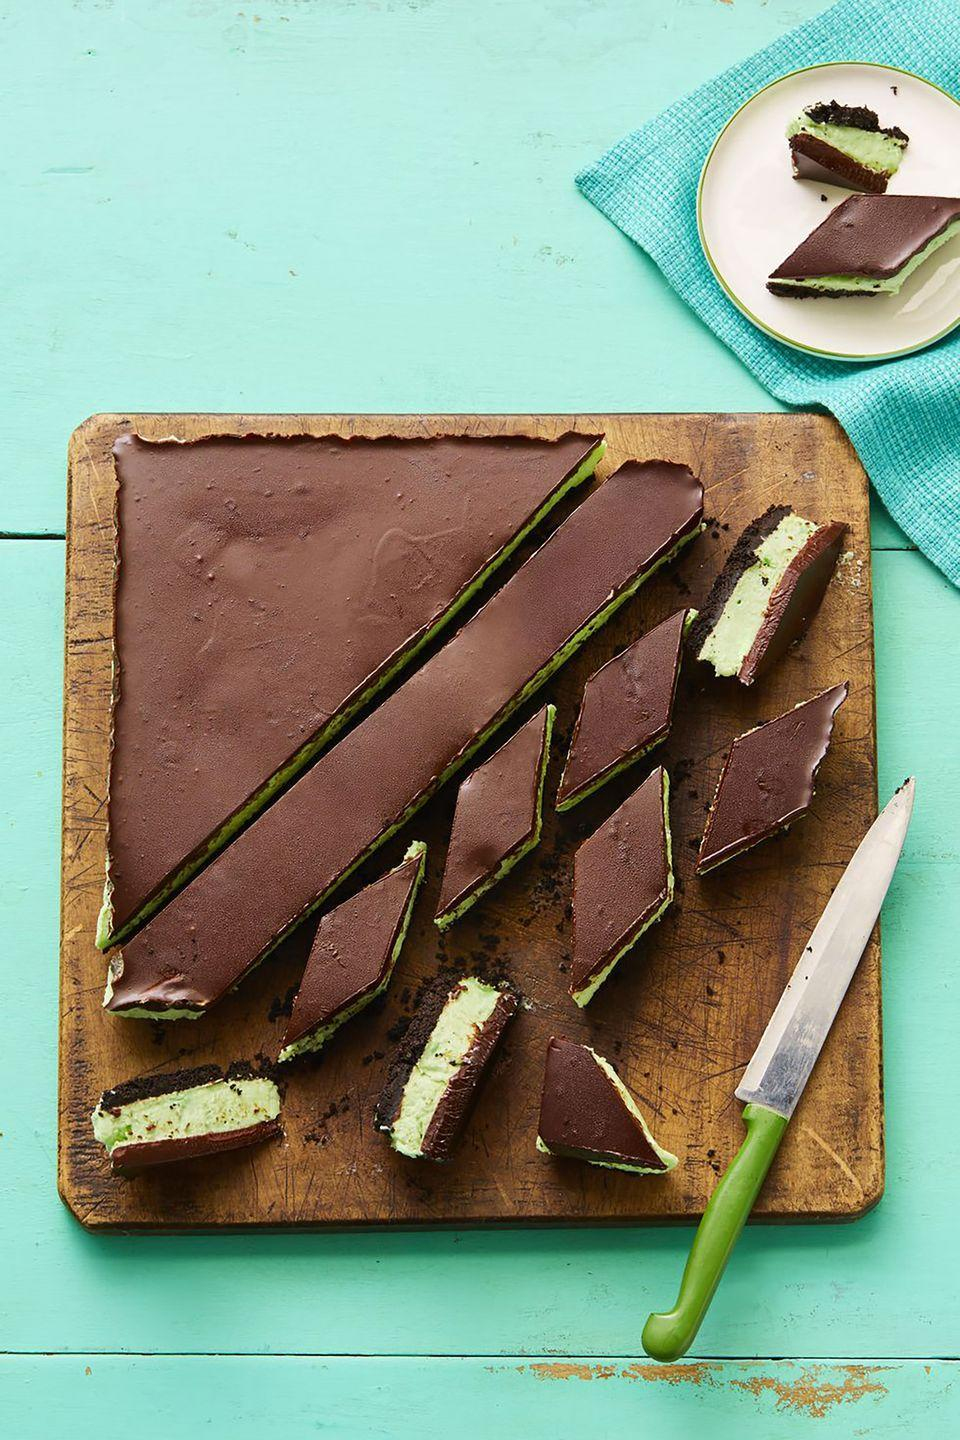 """<p>These delicious mint-chocolate bars are an oldie-but-goodie that will be the hit of your Mother's Day brunch. </p><p><a href=""""https://www.womansday.com/food-recipes/food-drinks/a16810585/grasshopper-bars-recipe/"""" rel=""""nofollow noopener"""" target=""""_blank"""" data-ylk=""""slk:Get the recipe for Grasshopper Bars."""" class=""""link rapid-noclick-resp""""><em>Get the recipe for Grasshopper Bars.</em></a></p>"""